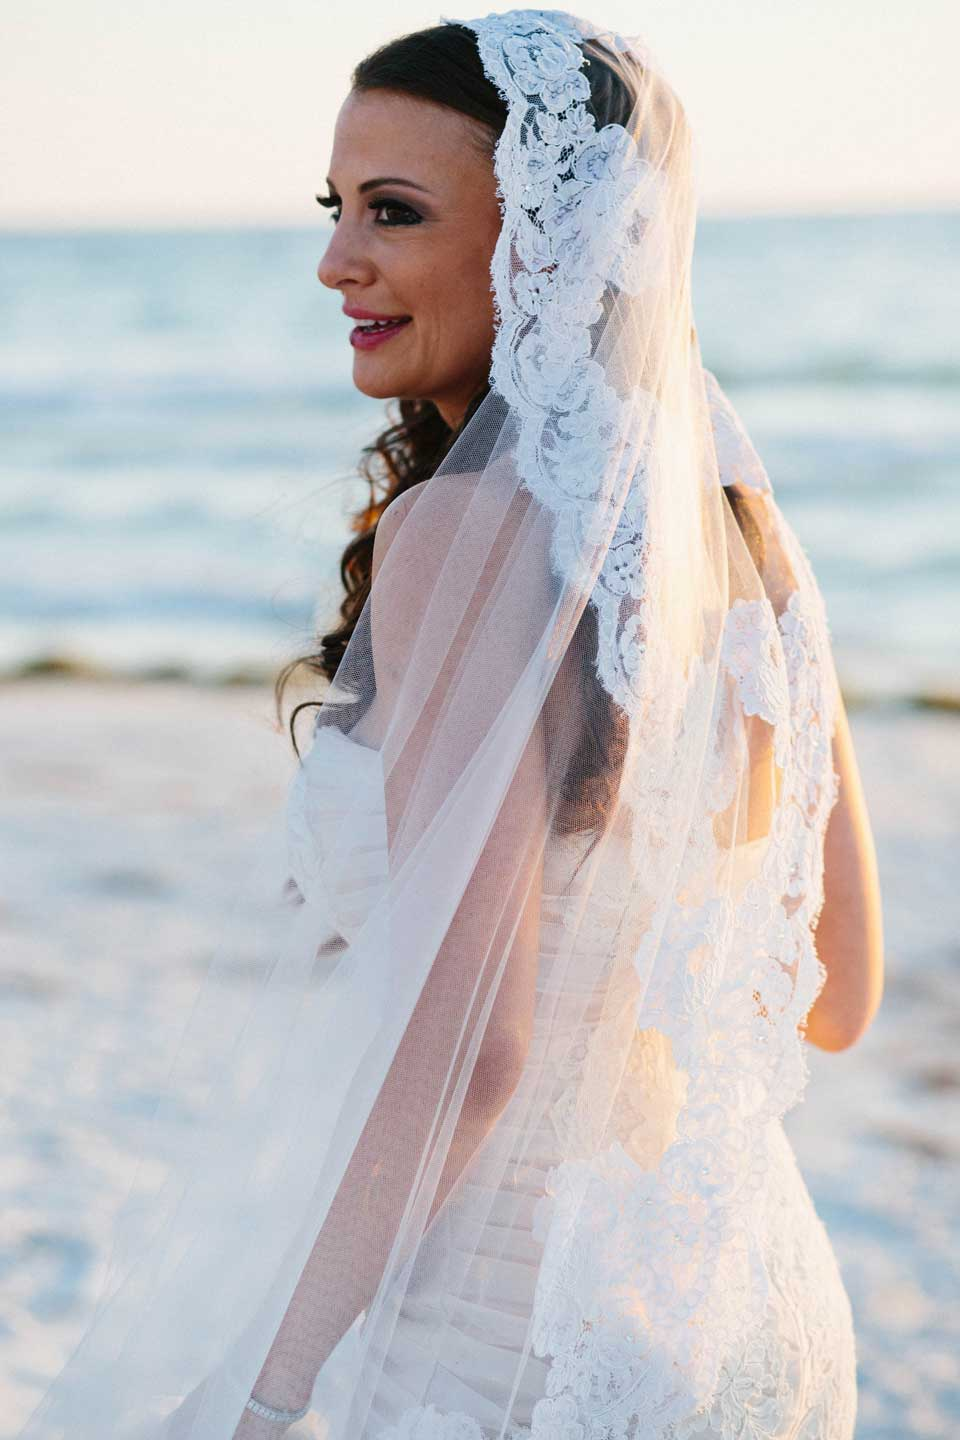 Isabel O'Neil Bridal Collection • Shannon Kirsten Photography